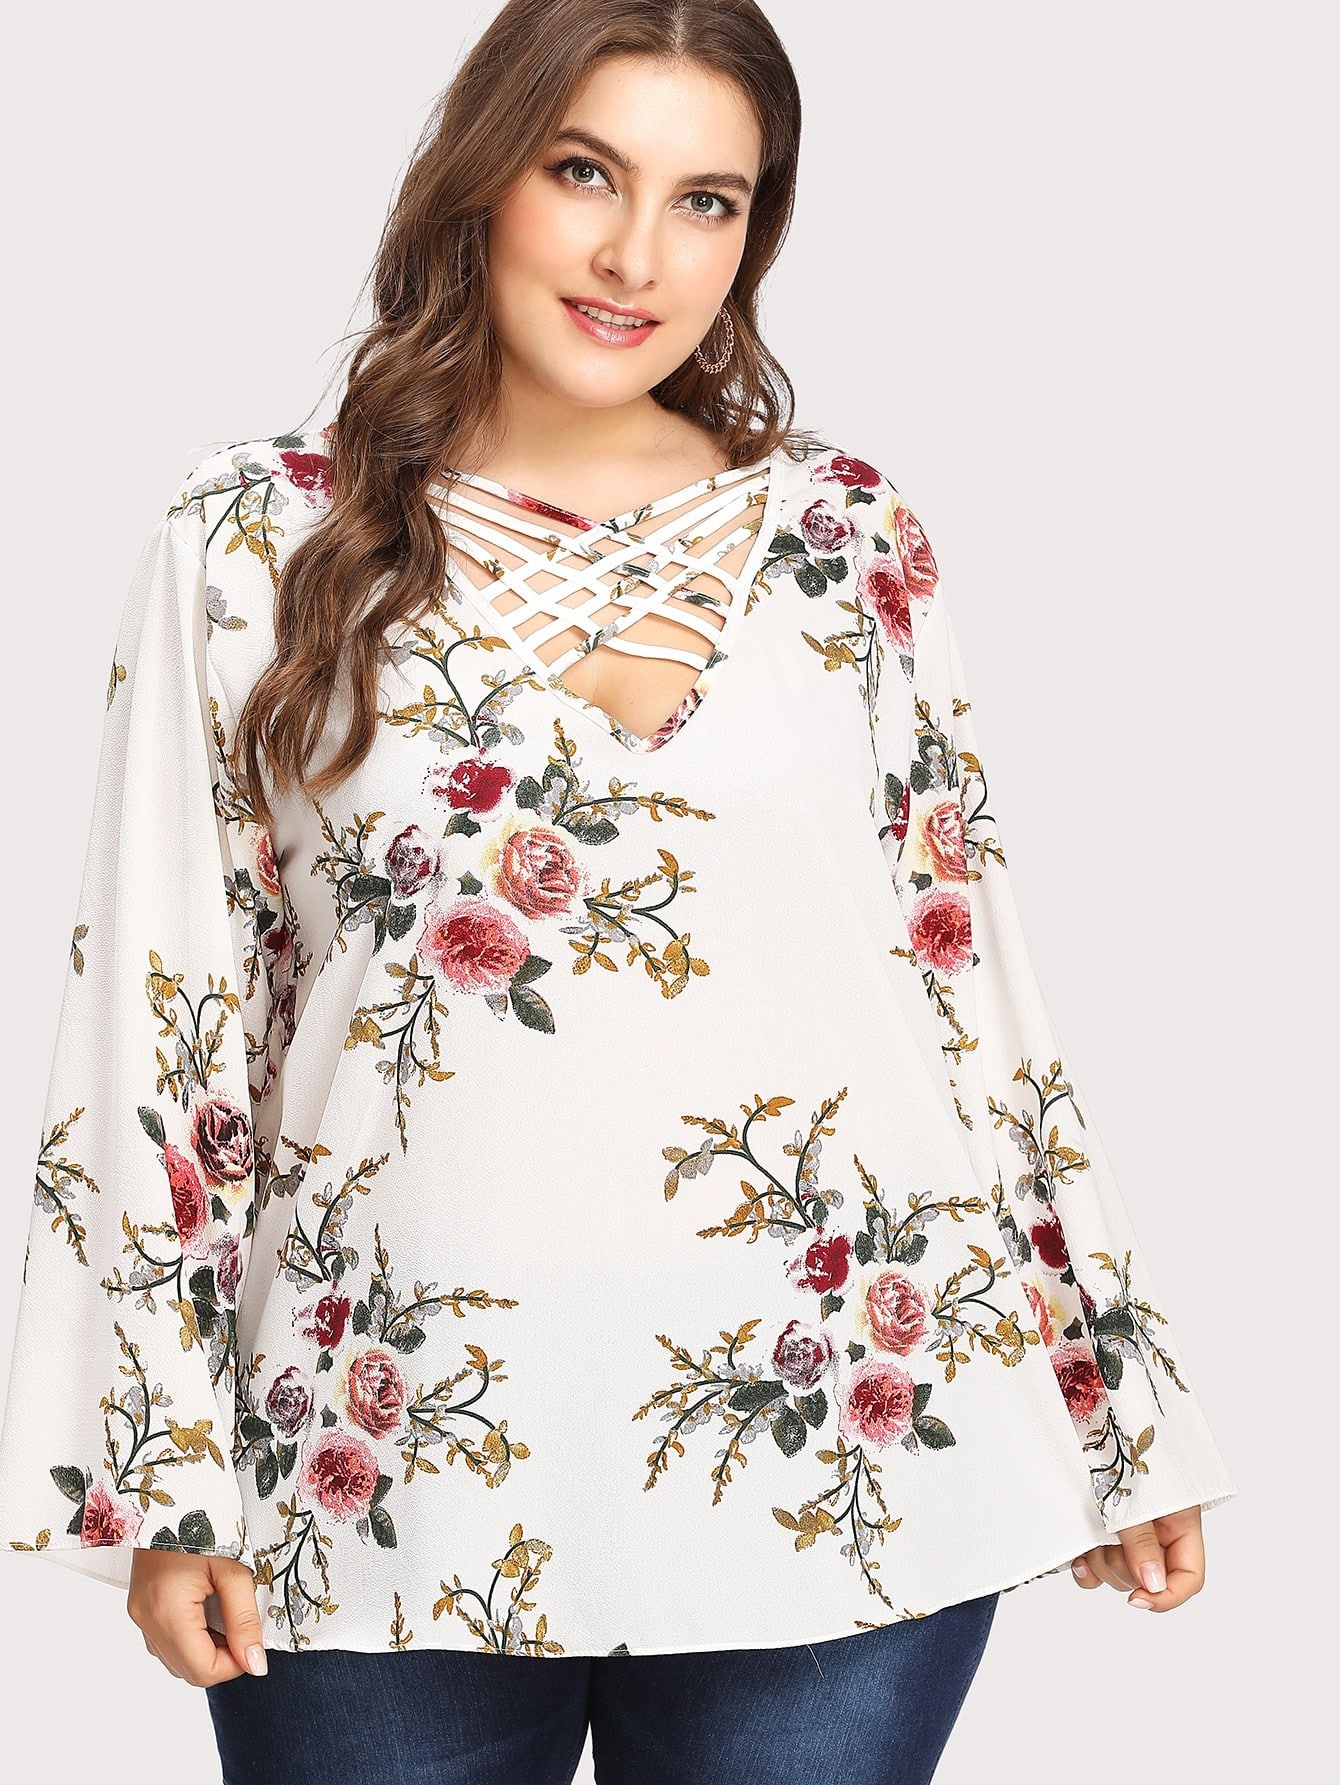 Image of Botanical Print Criss Cross Front Blouse